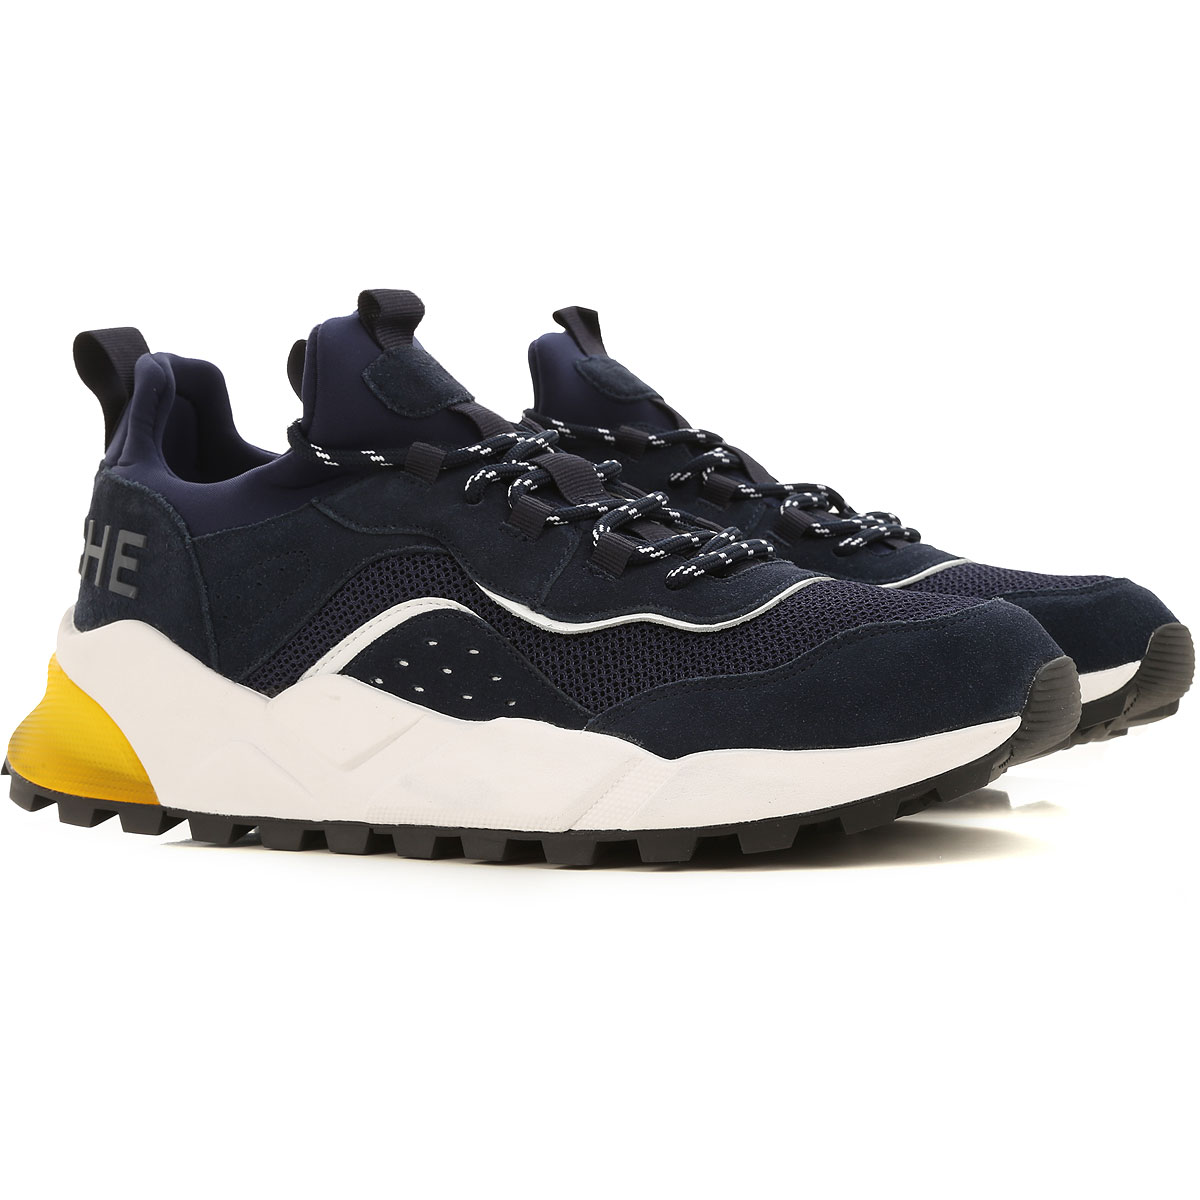 Voile Blanche Sneakers for Men On Sale, Blac, Canvas, 2019, 10 10.5 11.5 9